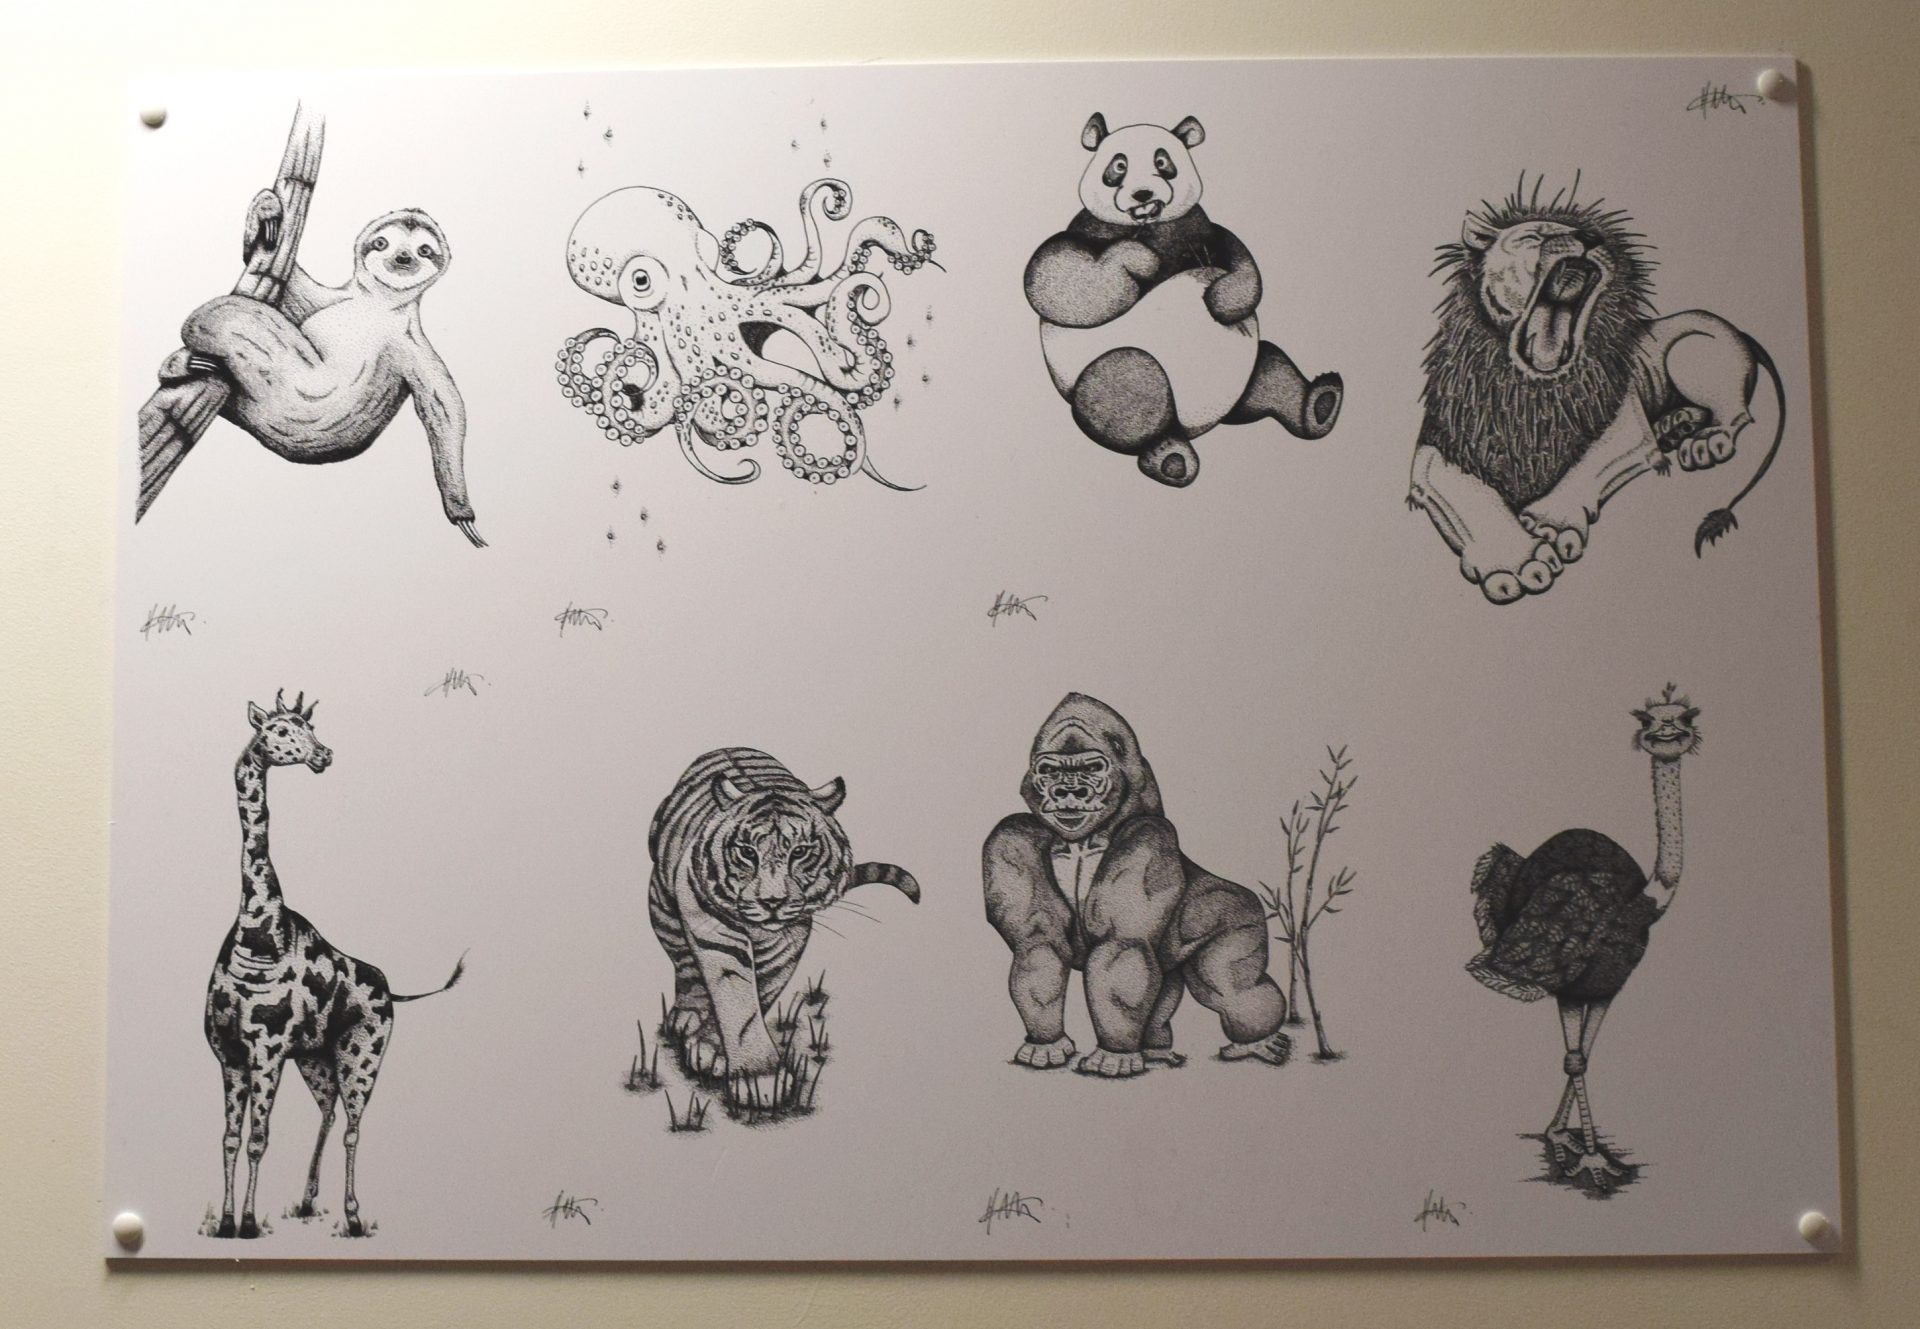 Wildlife drawings by Holly Metcalf on display in x-ray at the Northumbria Hospital